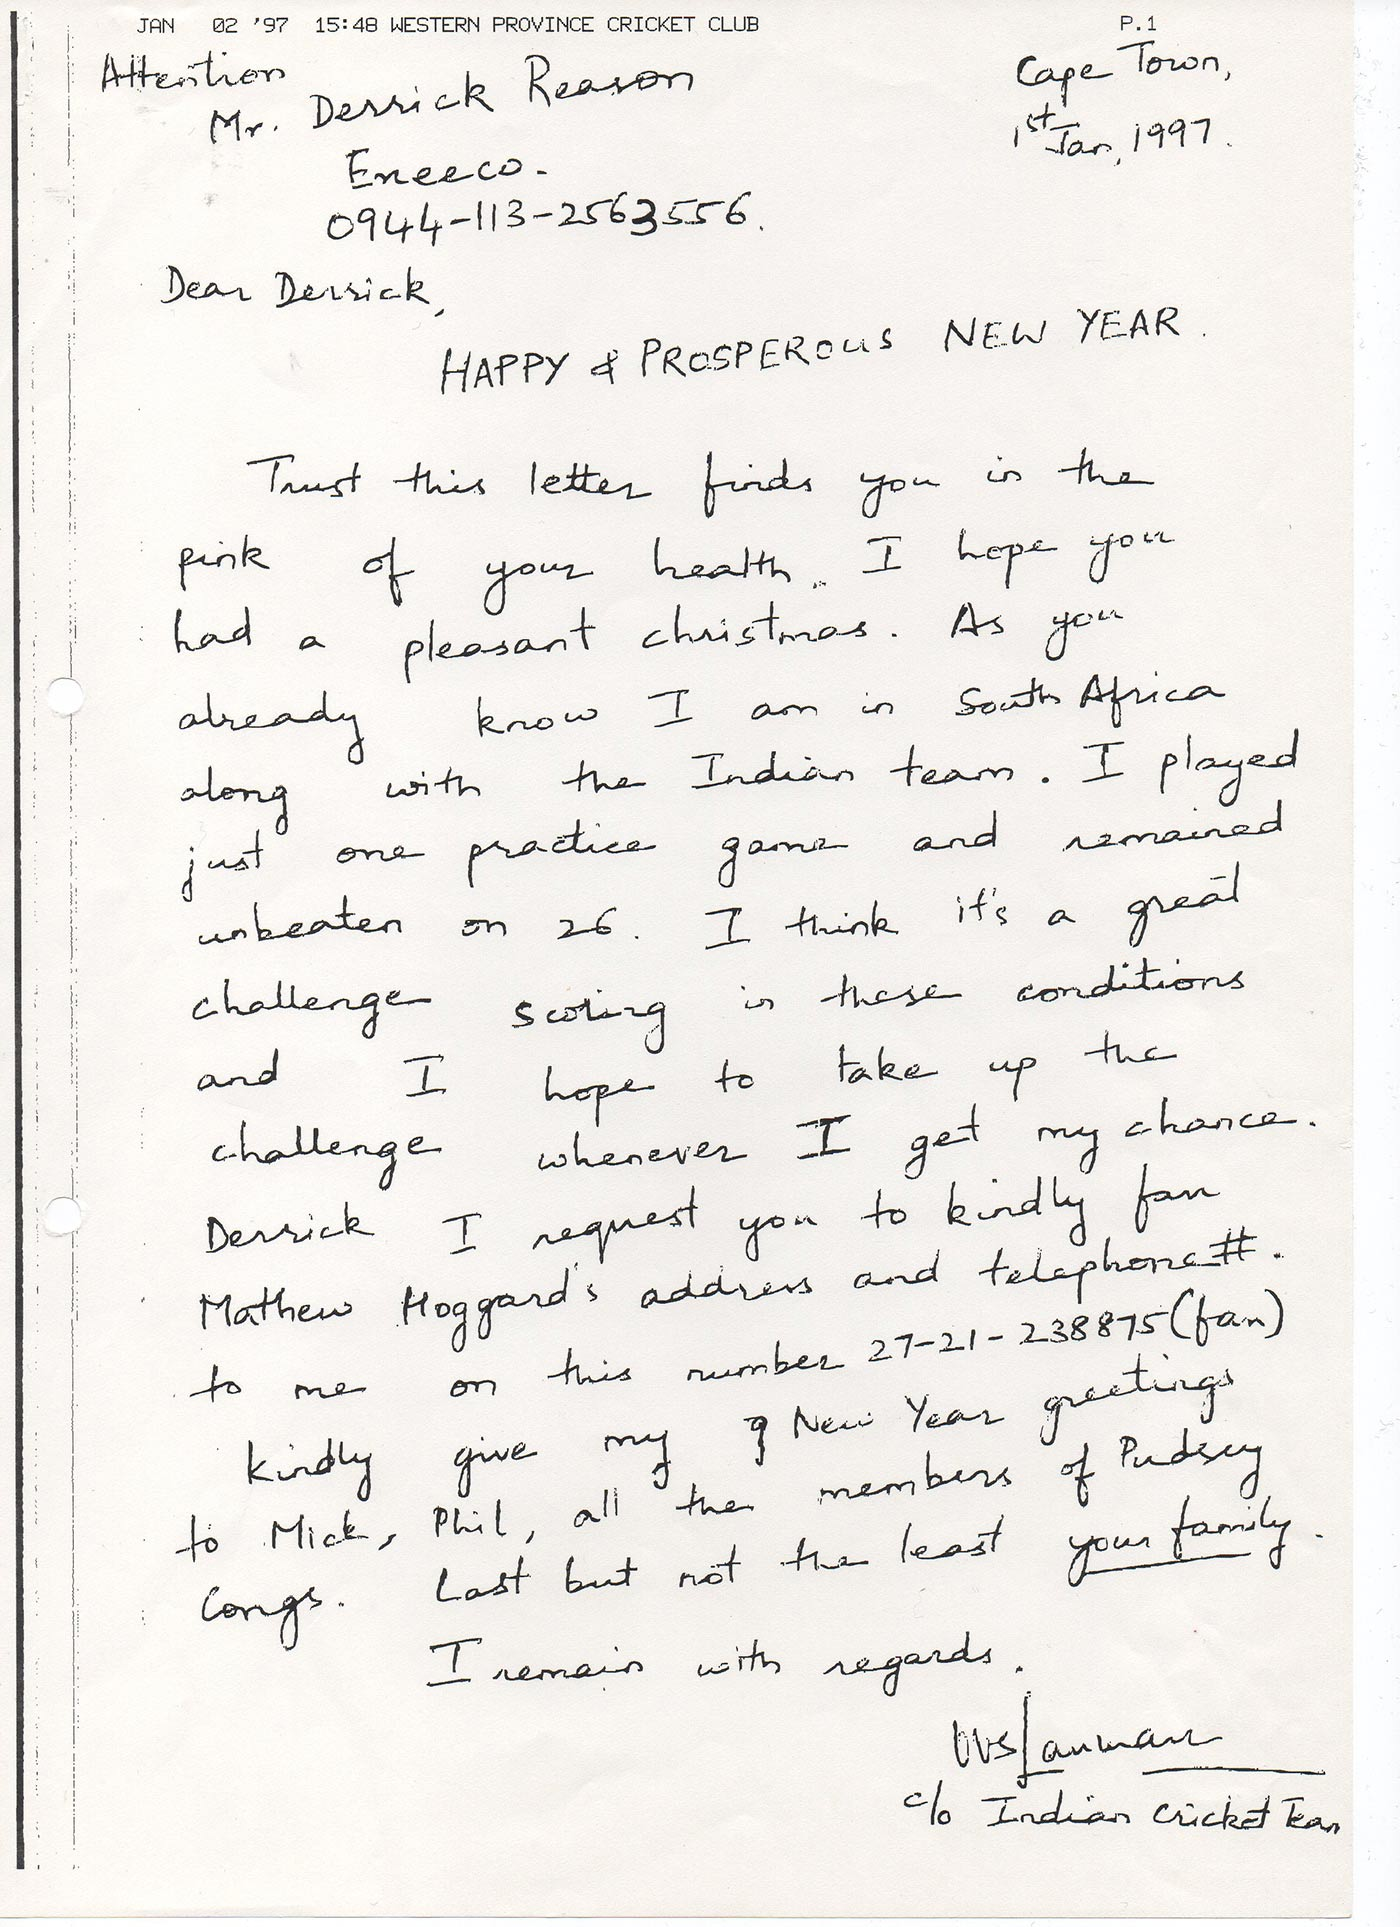 Greetings from down south: Laxman's fax to Derrick Reason in 1997